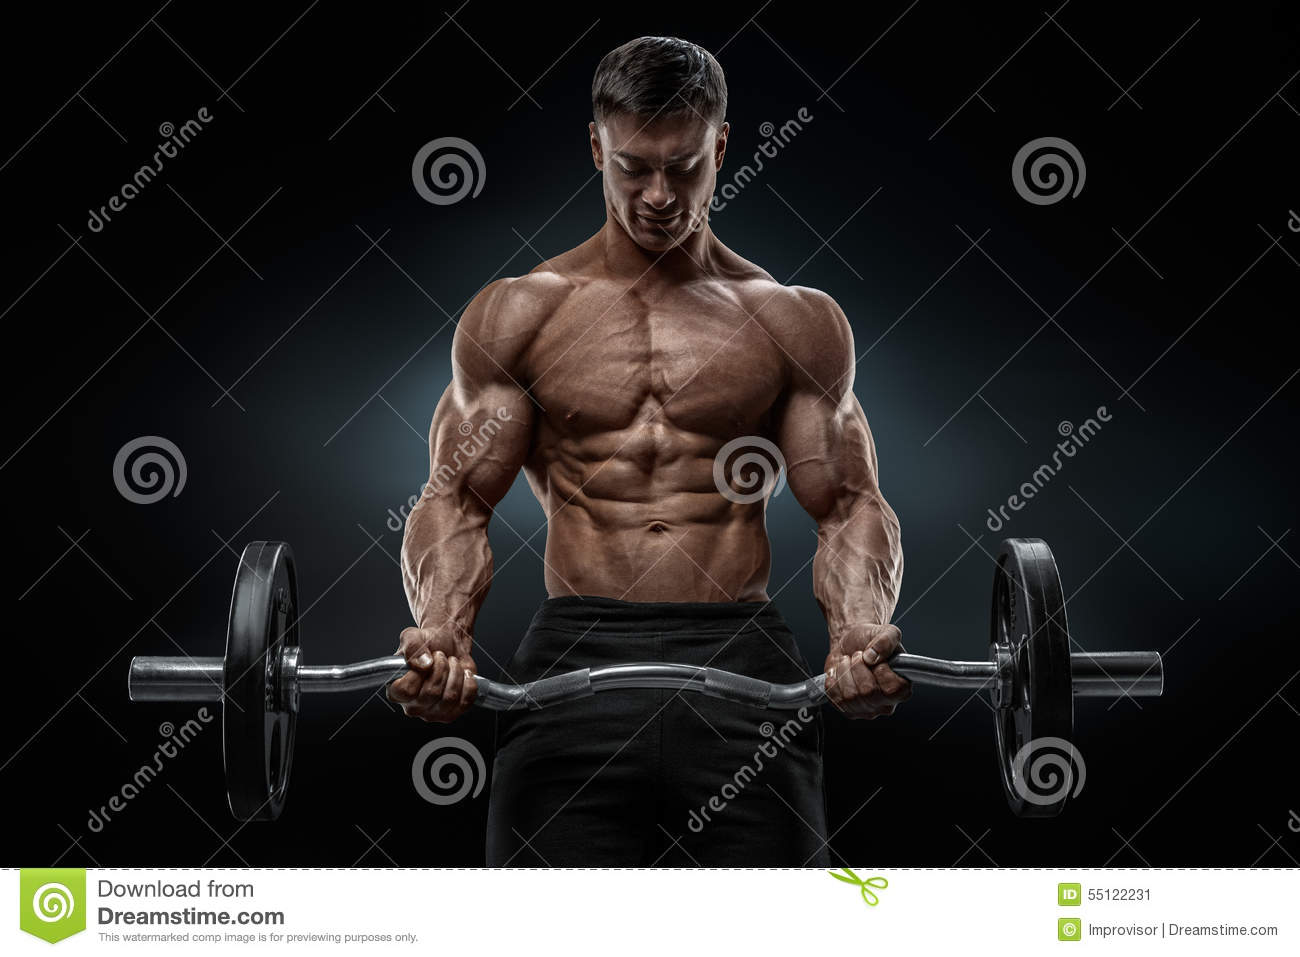 Download Closeup Portrait Of A Muscular Man Workout With Barbell At Gym Stock Image - Image of fitness, champion: 55122231